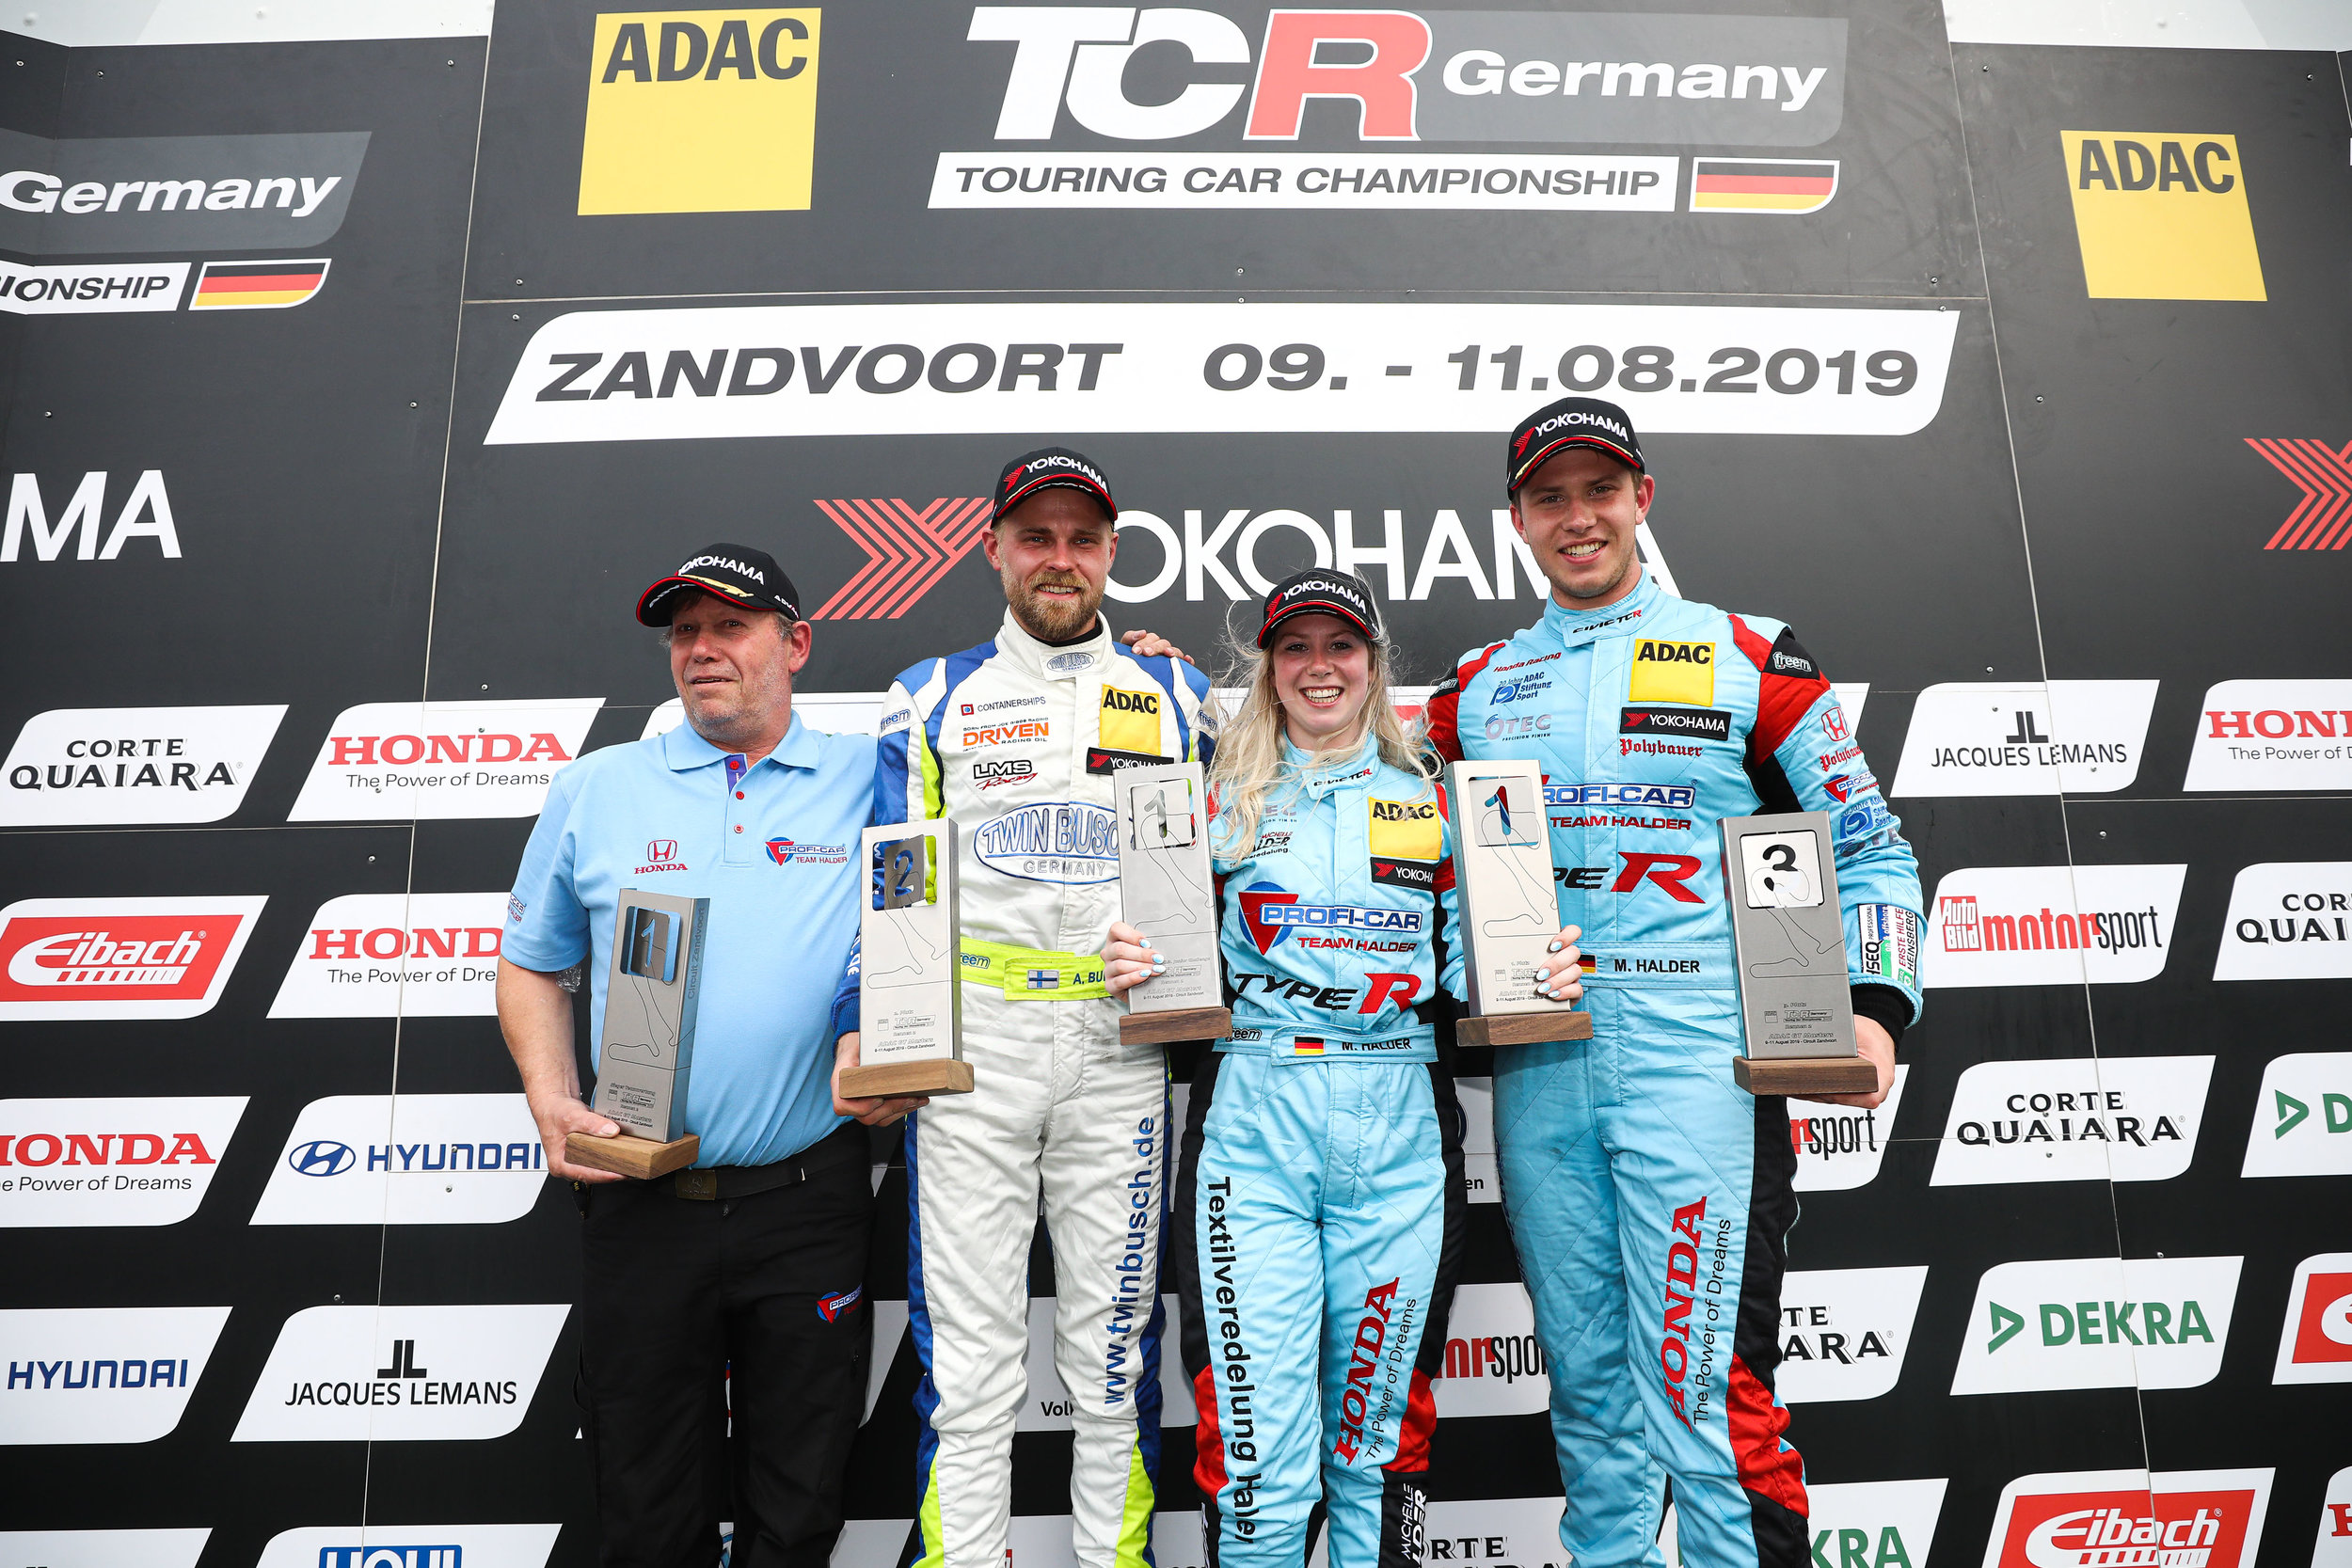 ADAC TCR Germany, Zandvoort, Profi-Car Team Halder, Michelle Halder, LMS Racing, Antti Buri, Profi-Car Team Honda ADAC Sachsen, Mike Halder